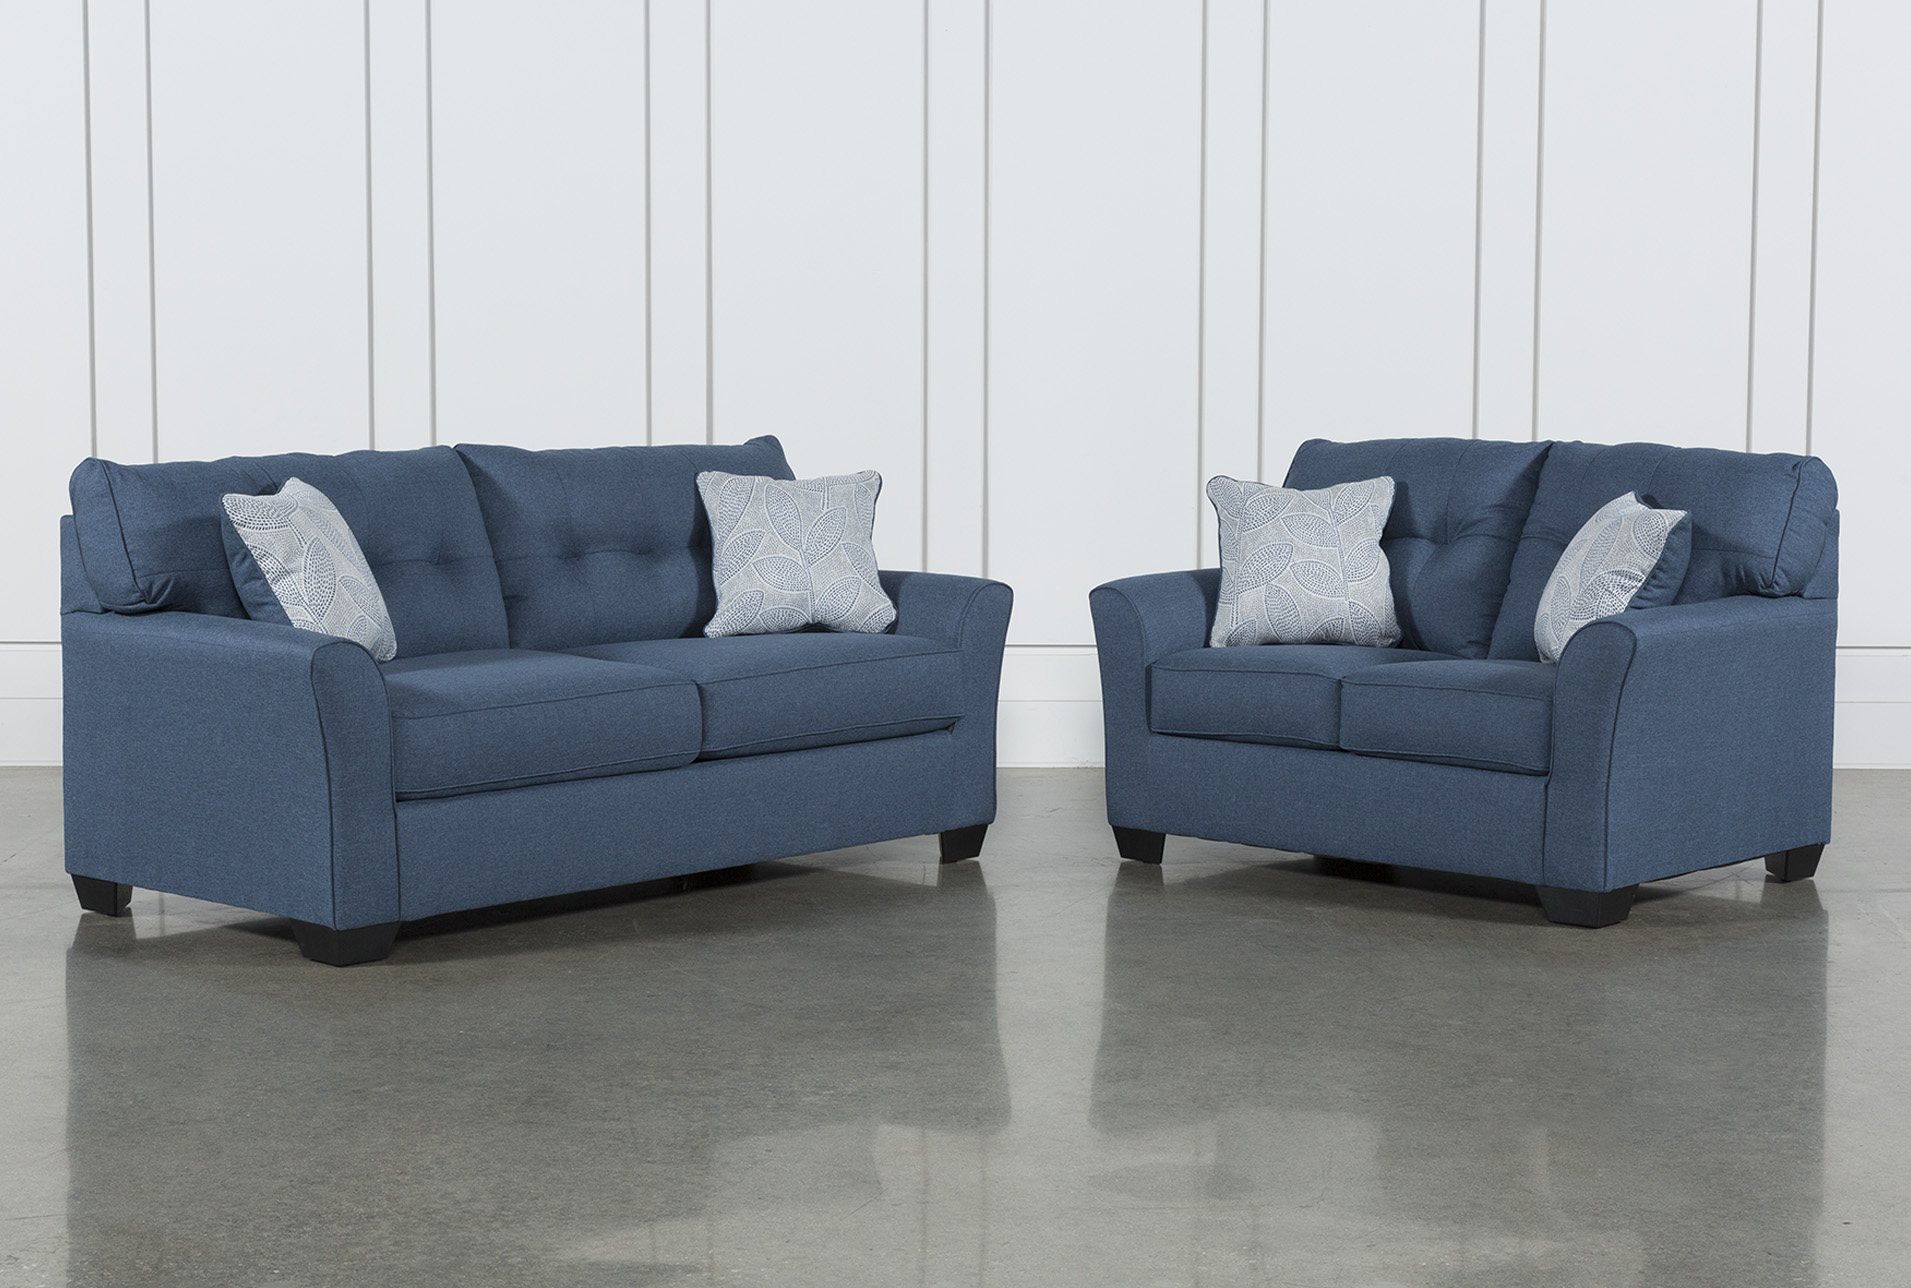 Picture of: Jacoby Denim 2 Piece Living Room Set Living Spaces